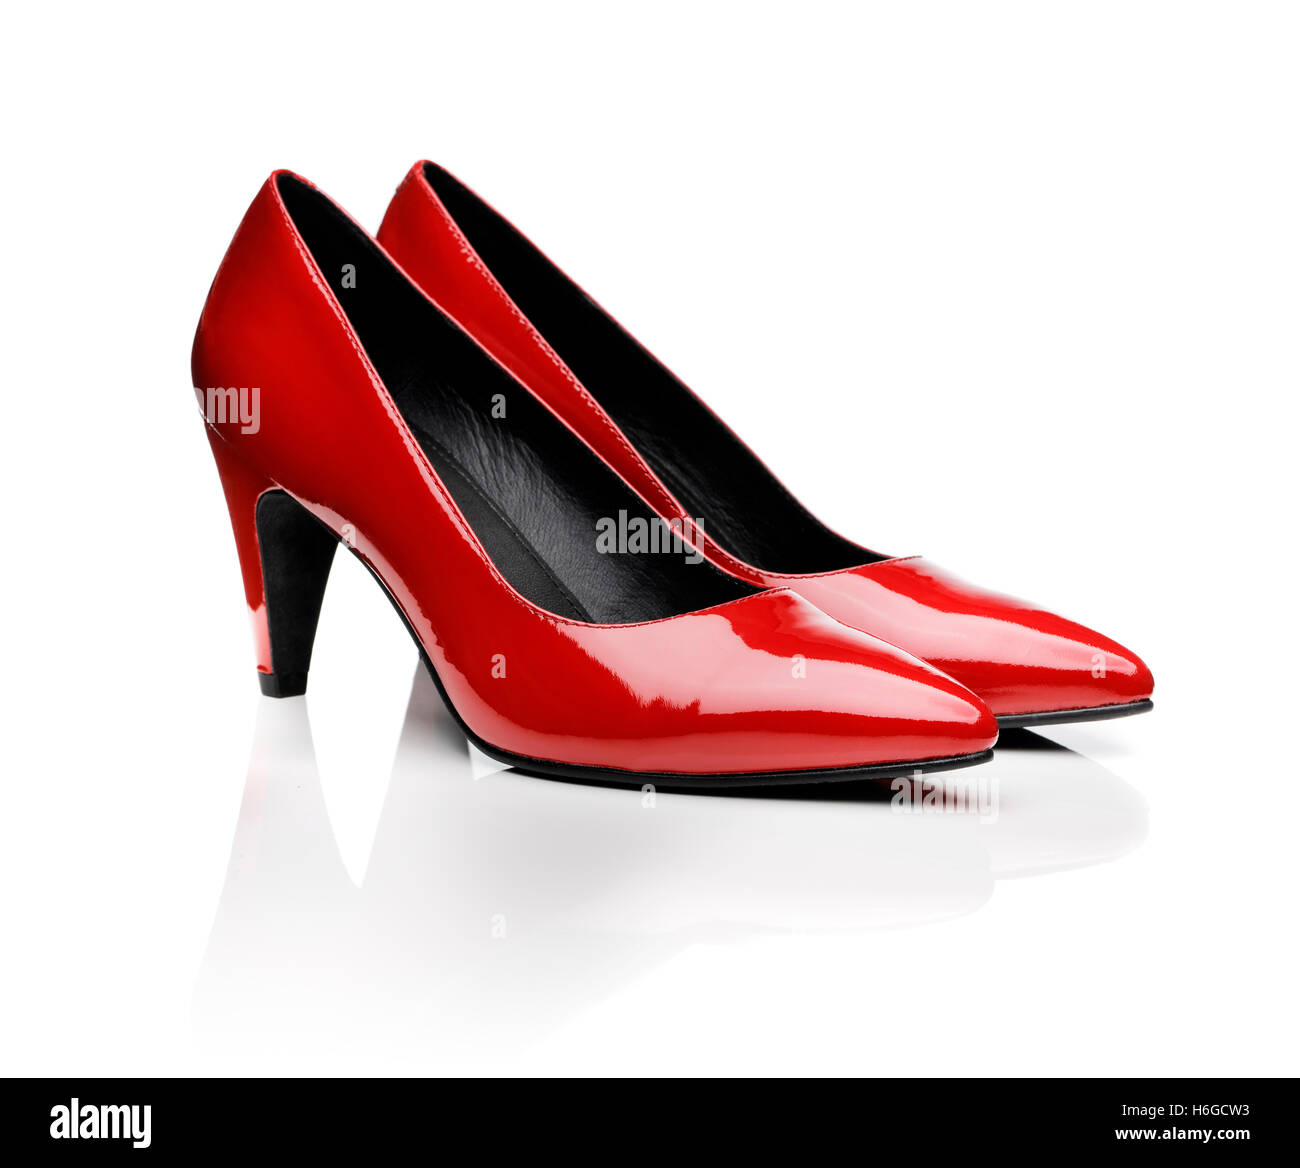 Pair of red women's pumps on white with natural reflection. - Stock Image